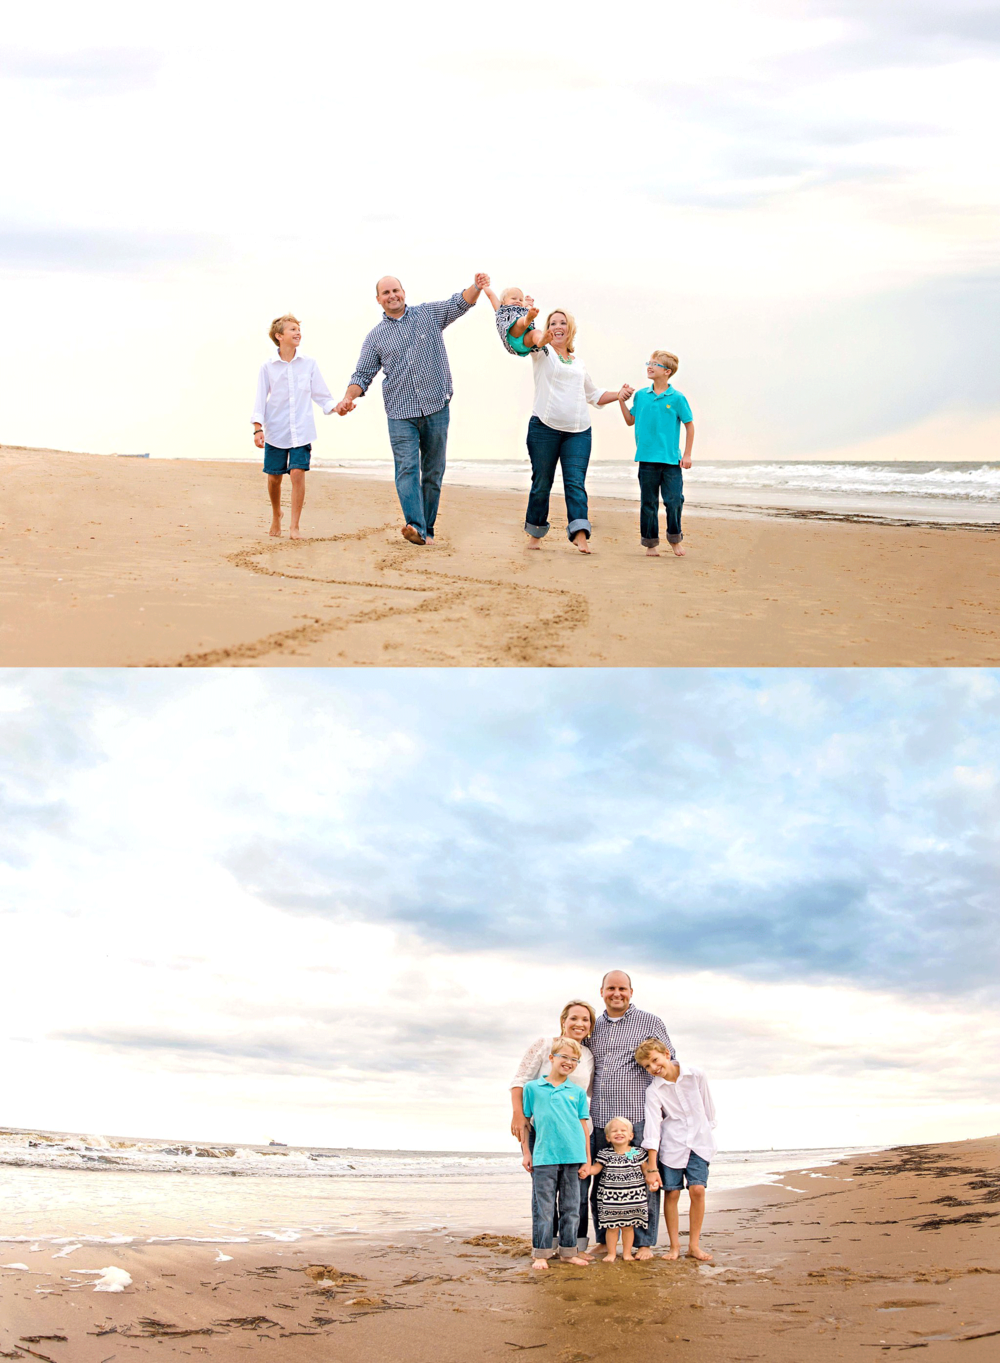 sandbridge-beach-photographers-family-photos-on-the-beach-virginia-beach-photographer-melissa-bliss-photography.png